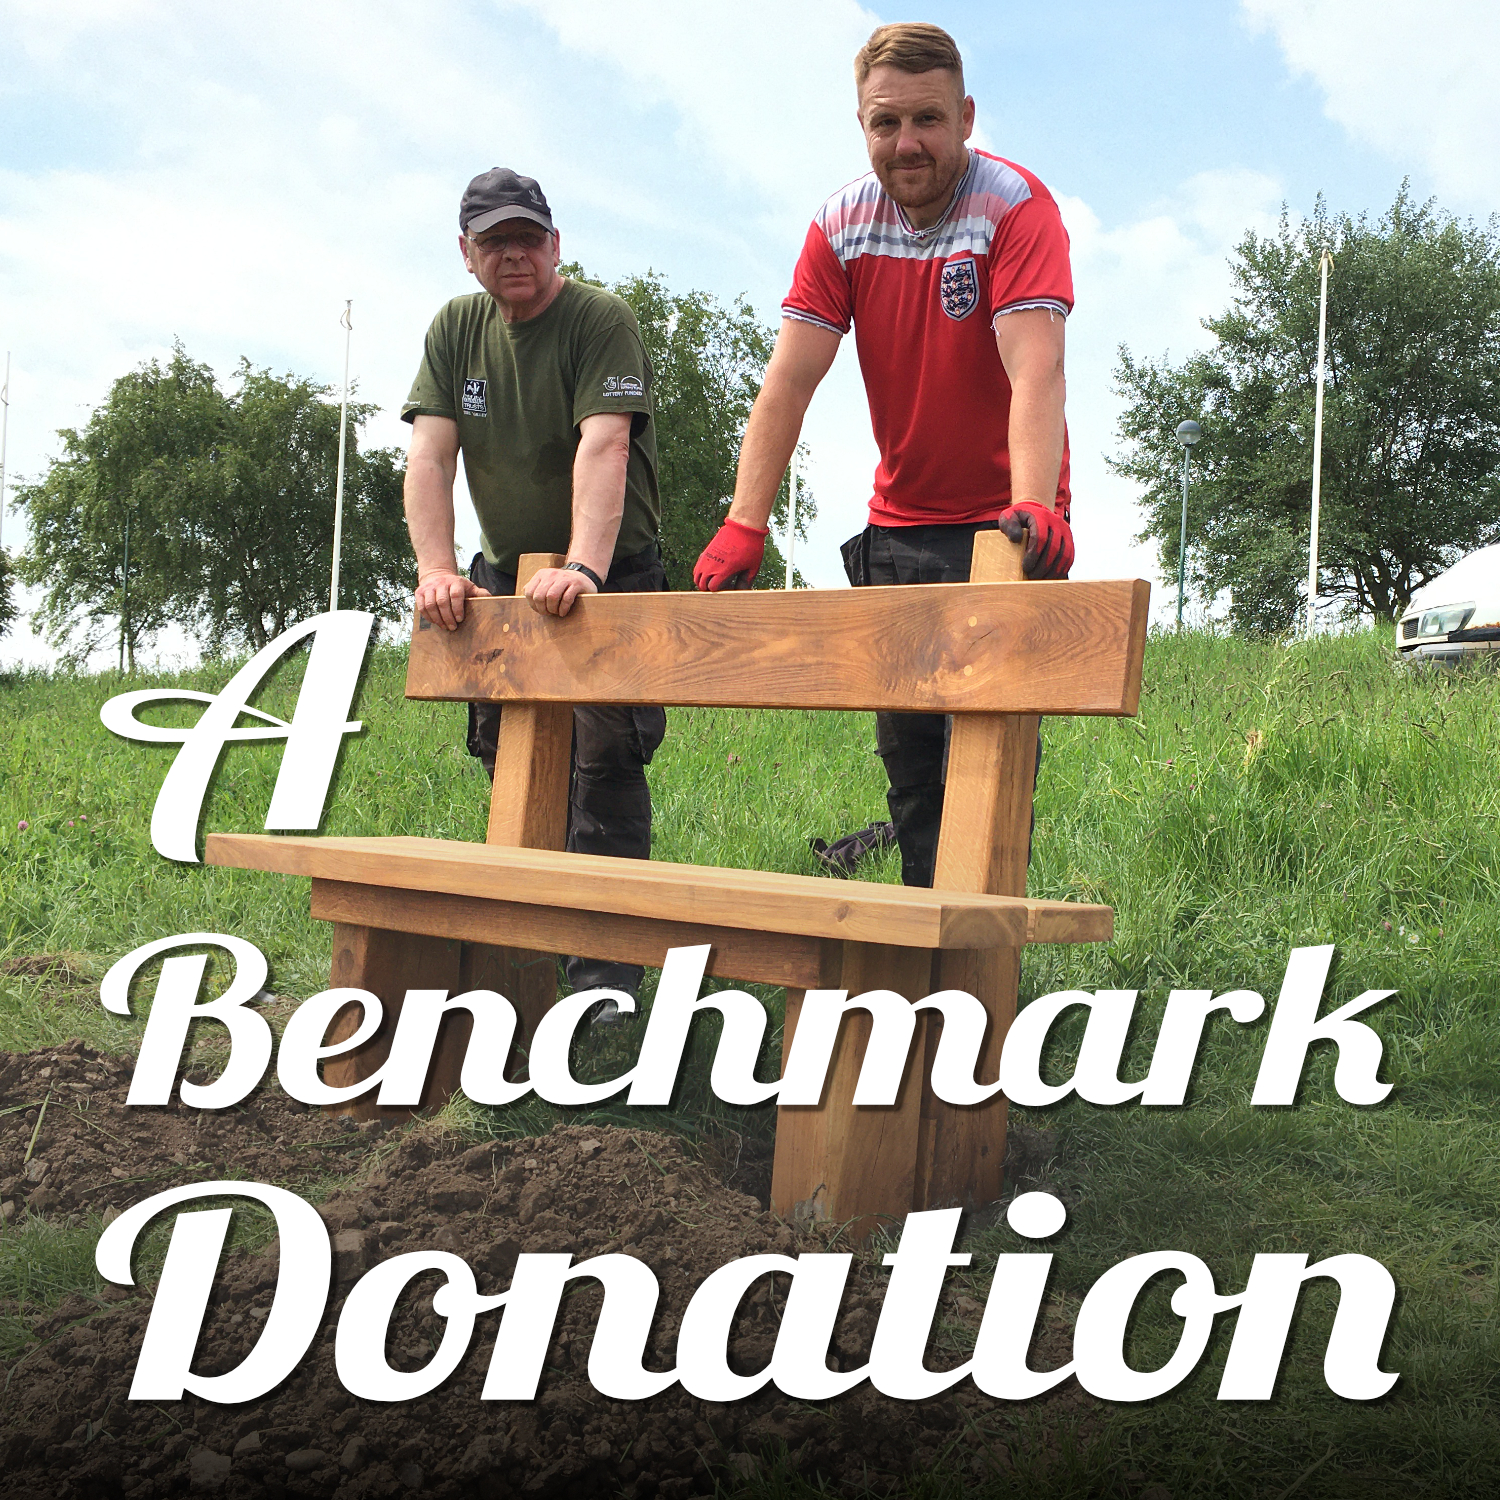 Dontation pays for a new bench. A volunteer and member of staff stand behind a new oak bench they've just installed on our Portrack Marsh Nature Reserve. It was made by staff and volunteers at Tees Valley Wildlife Trust and paid for by Good Nature News Teesside and North Yorkshire. Text reads 'A Benchmark Donation'.